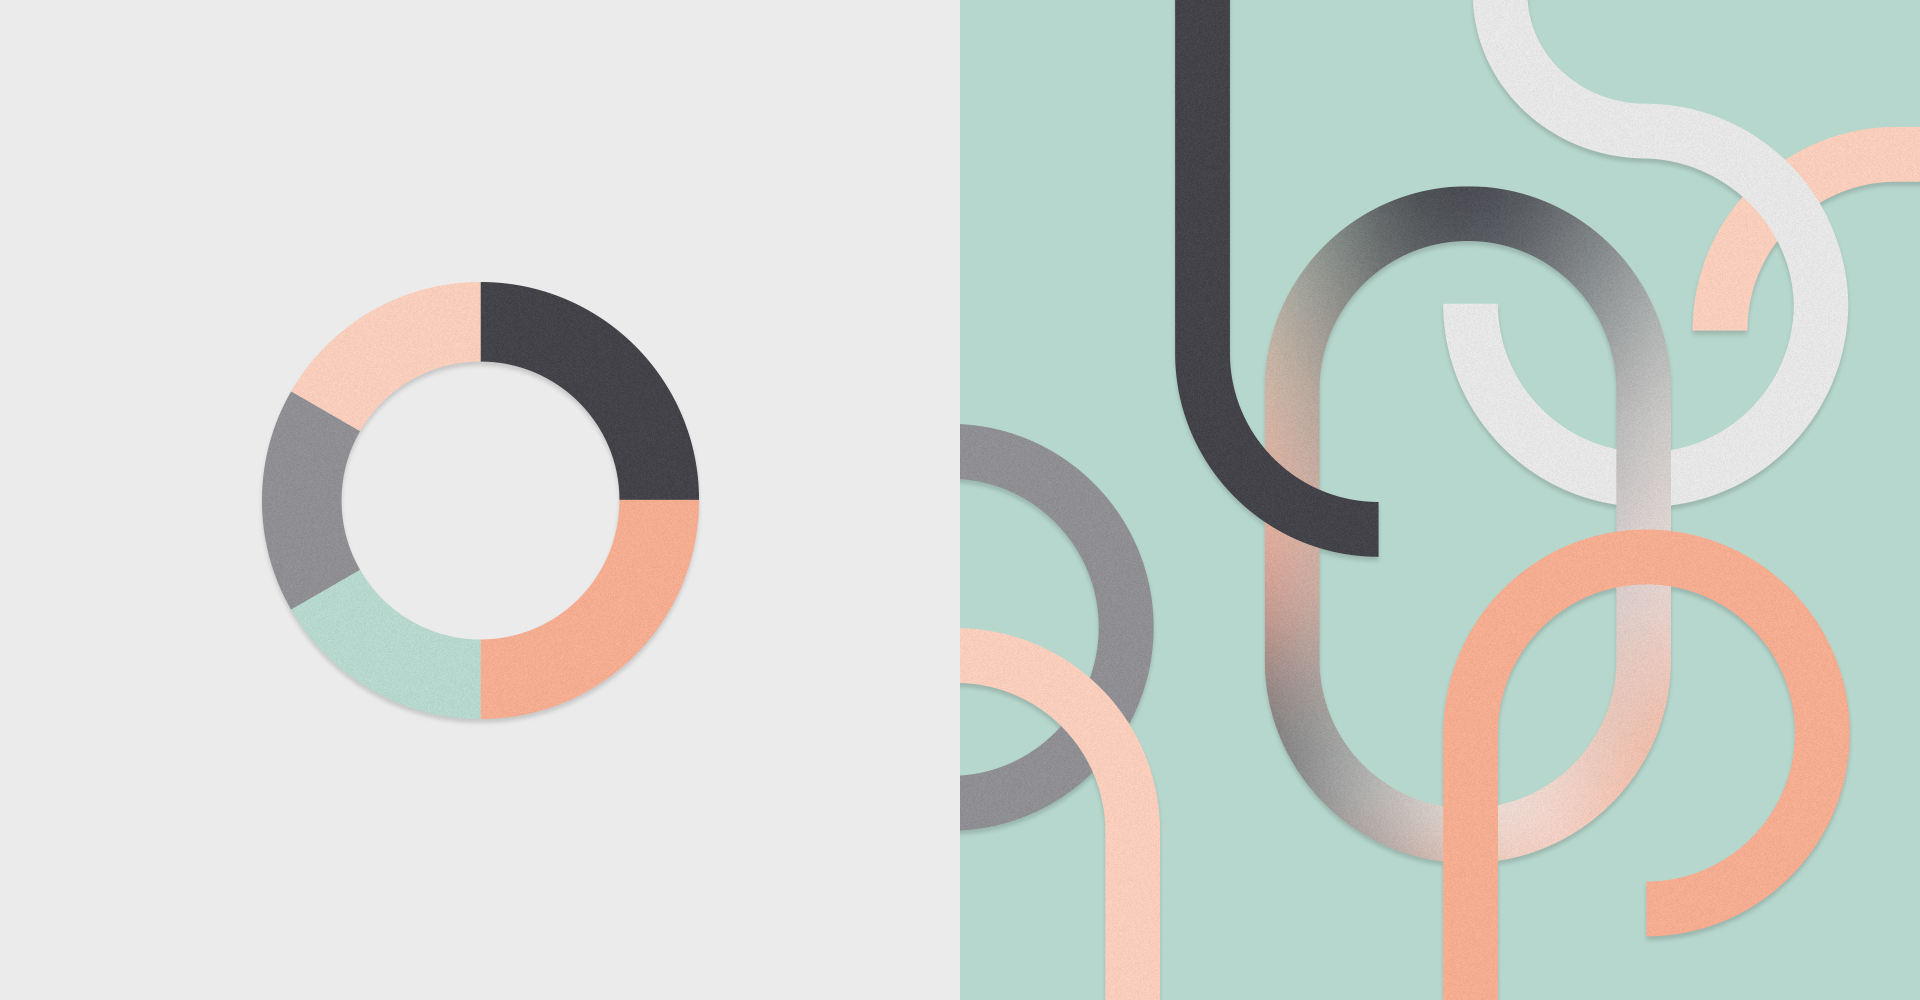 helene-chataigner-pm-identity-colors-letters